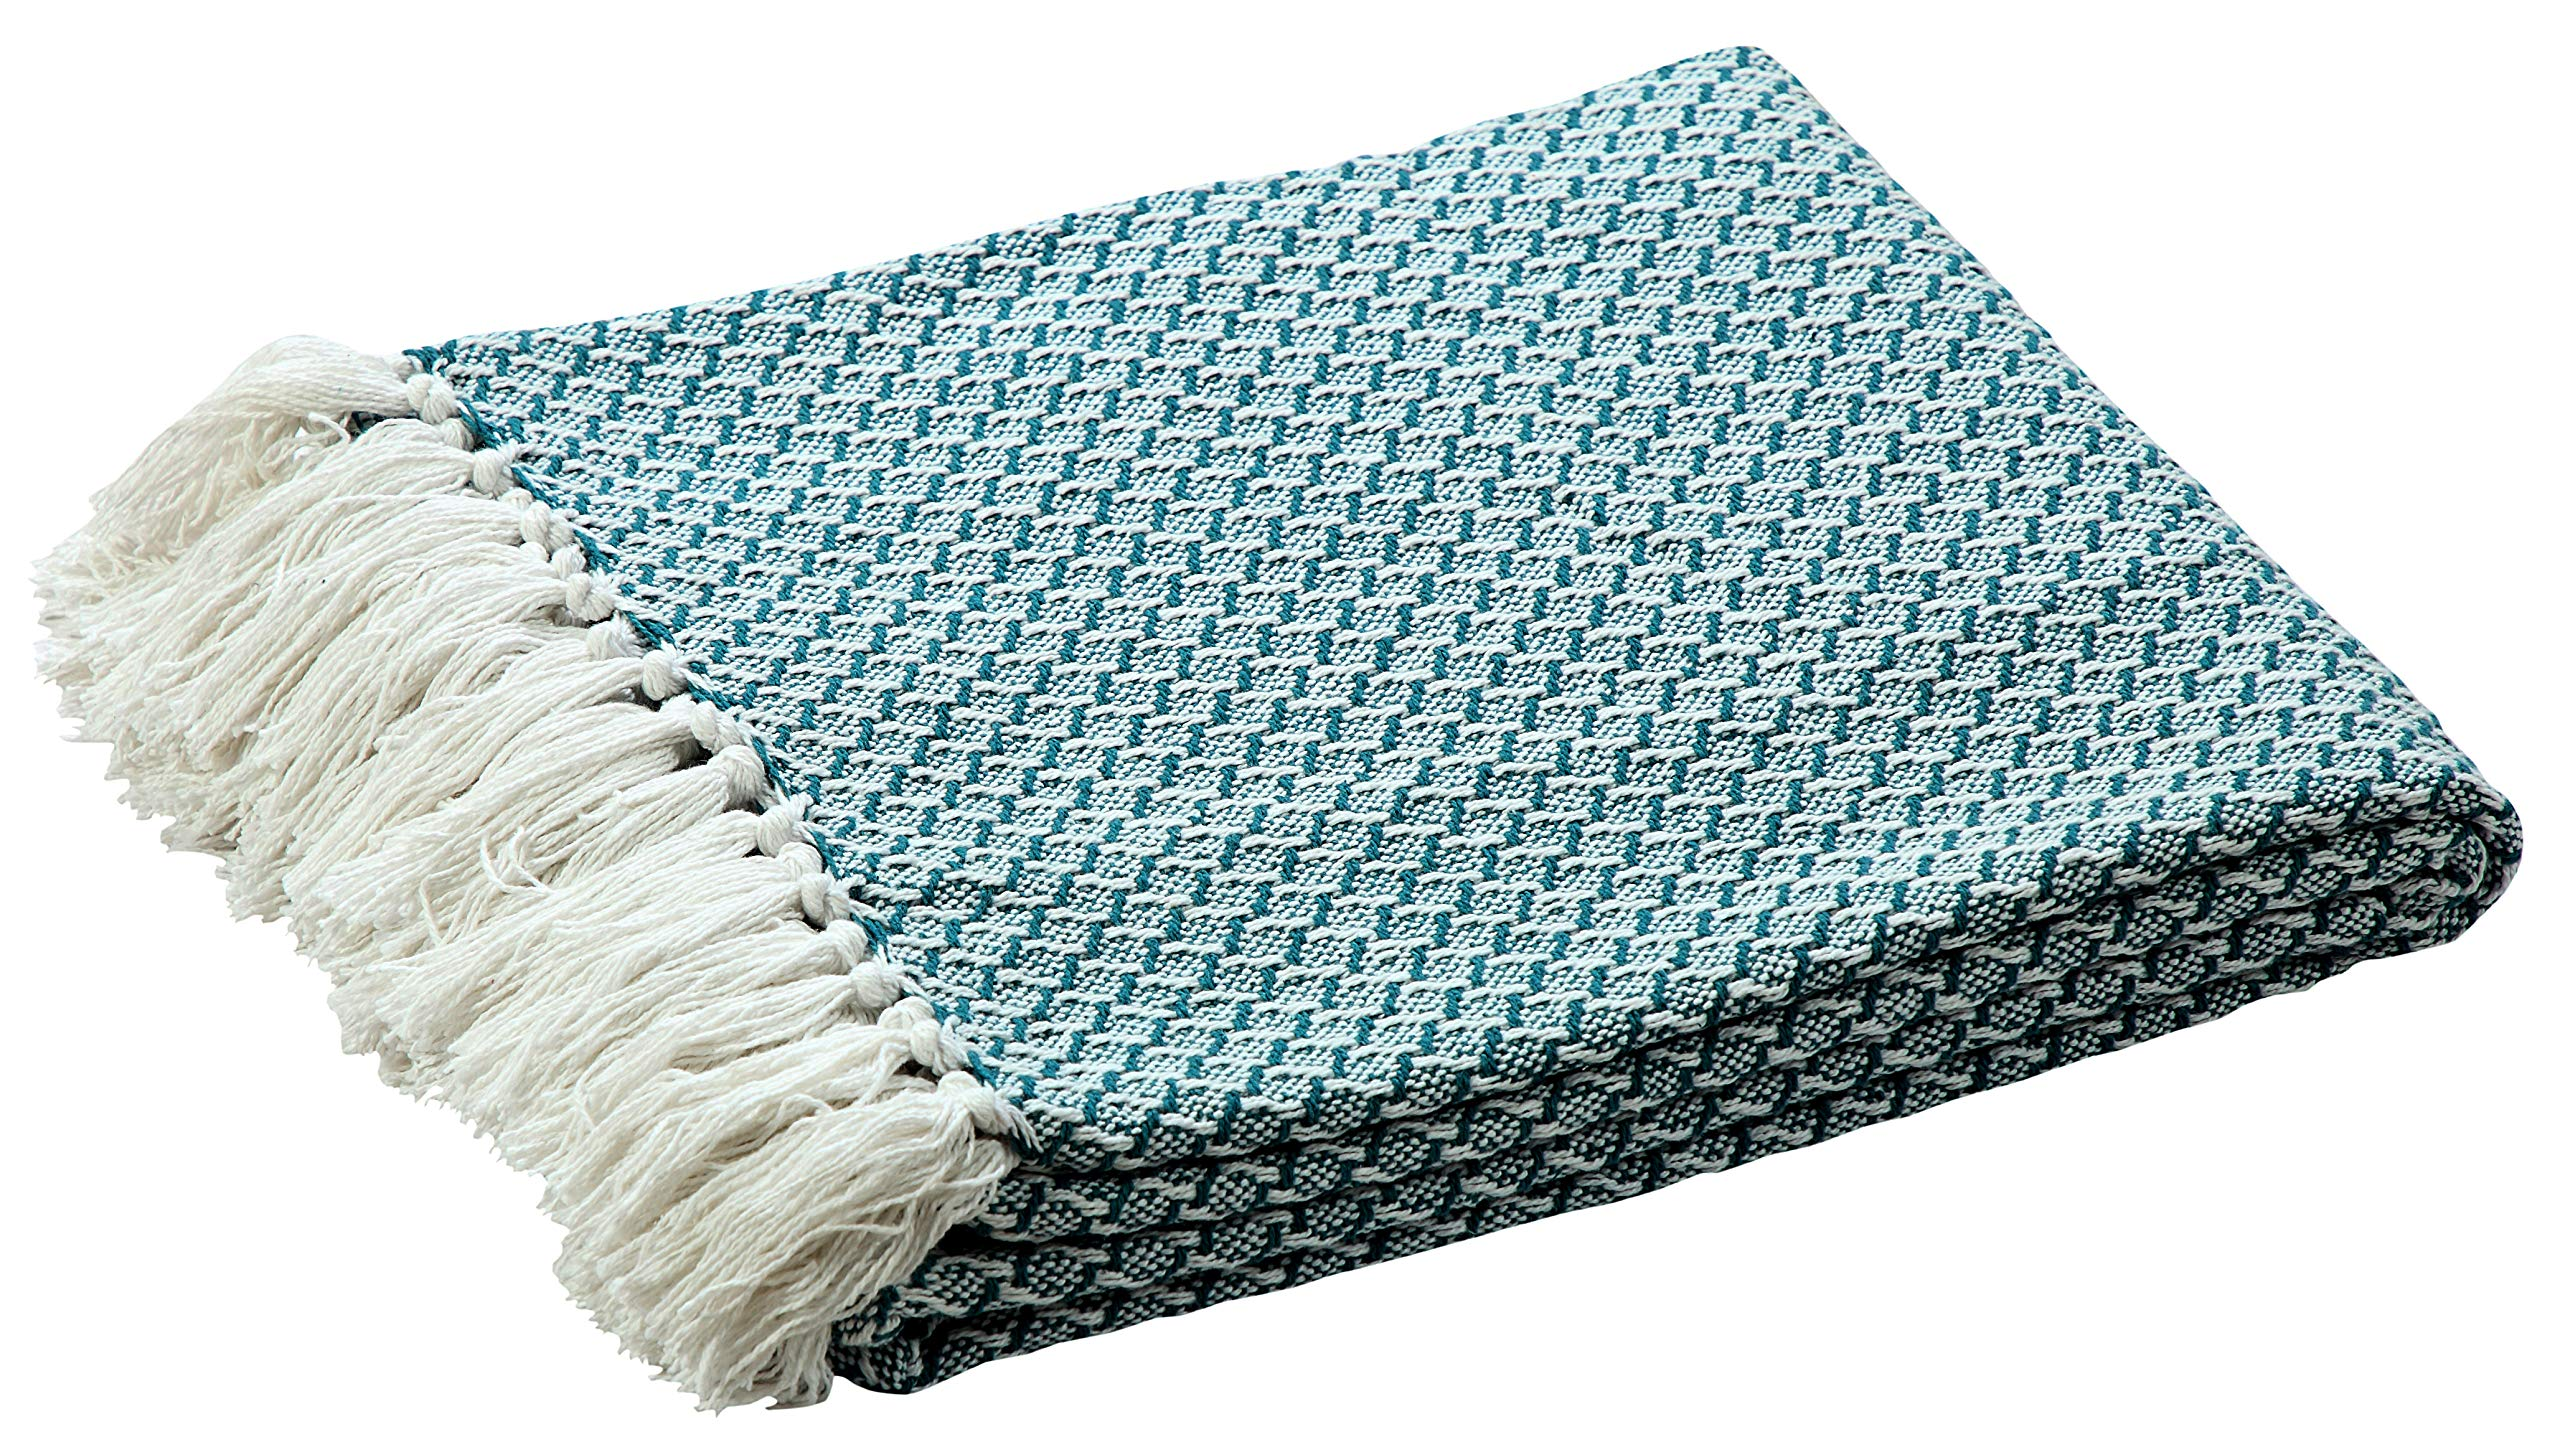 Farmhouse Throws Blanket with Fringe for Chair,Couch,Picnic,Camping, Beach,Throws for Couch,Everyday Use, 100% Ring Spun Cotton Throw Blanket with Super Soft and Excellent Handfeel 50 x 60 -Sea Green